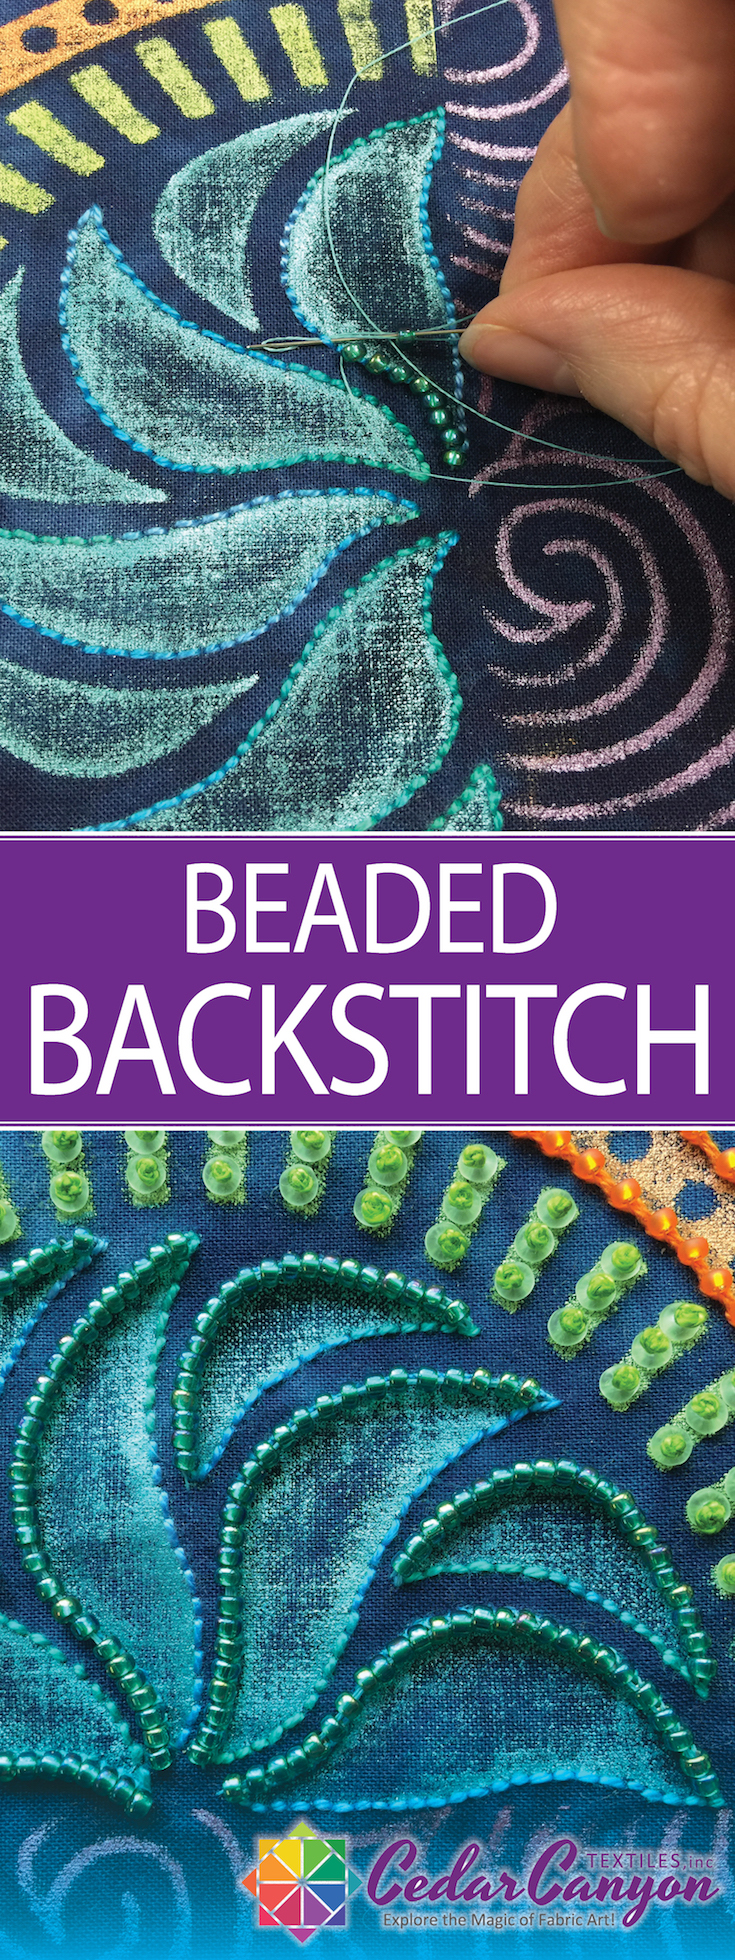 Beaded-Backstitch-PIN